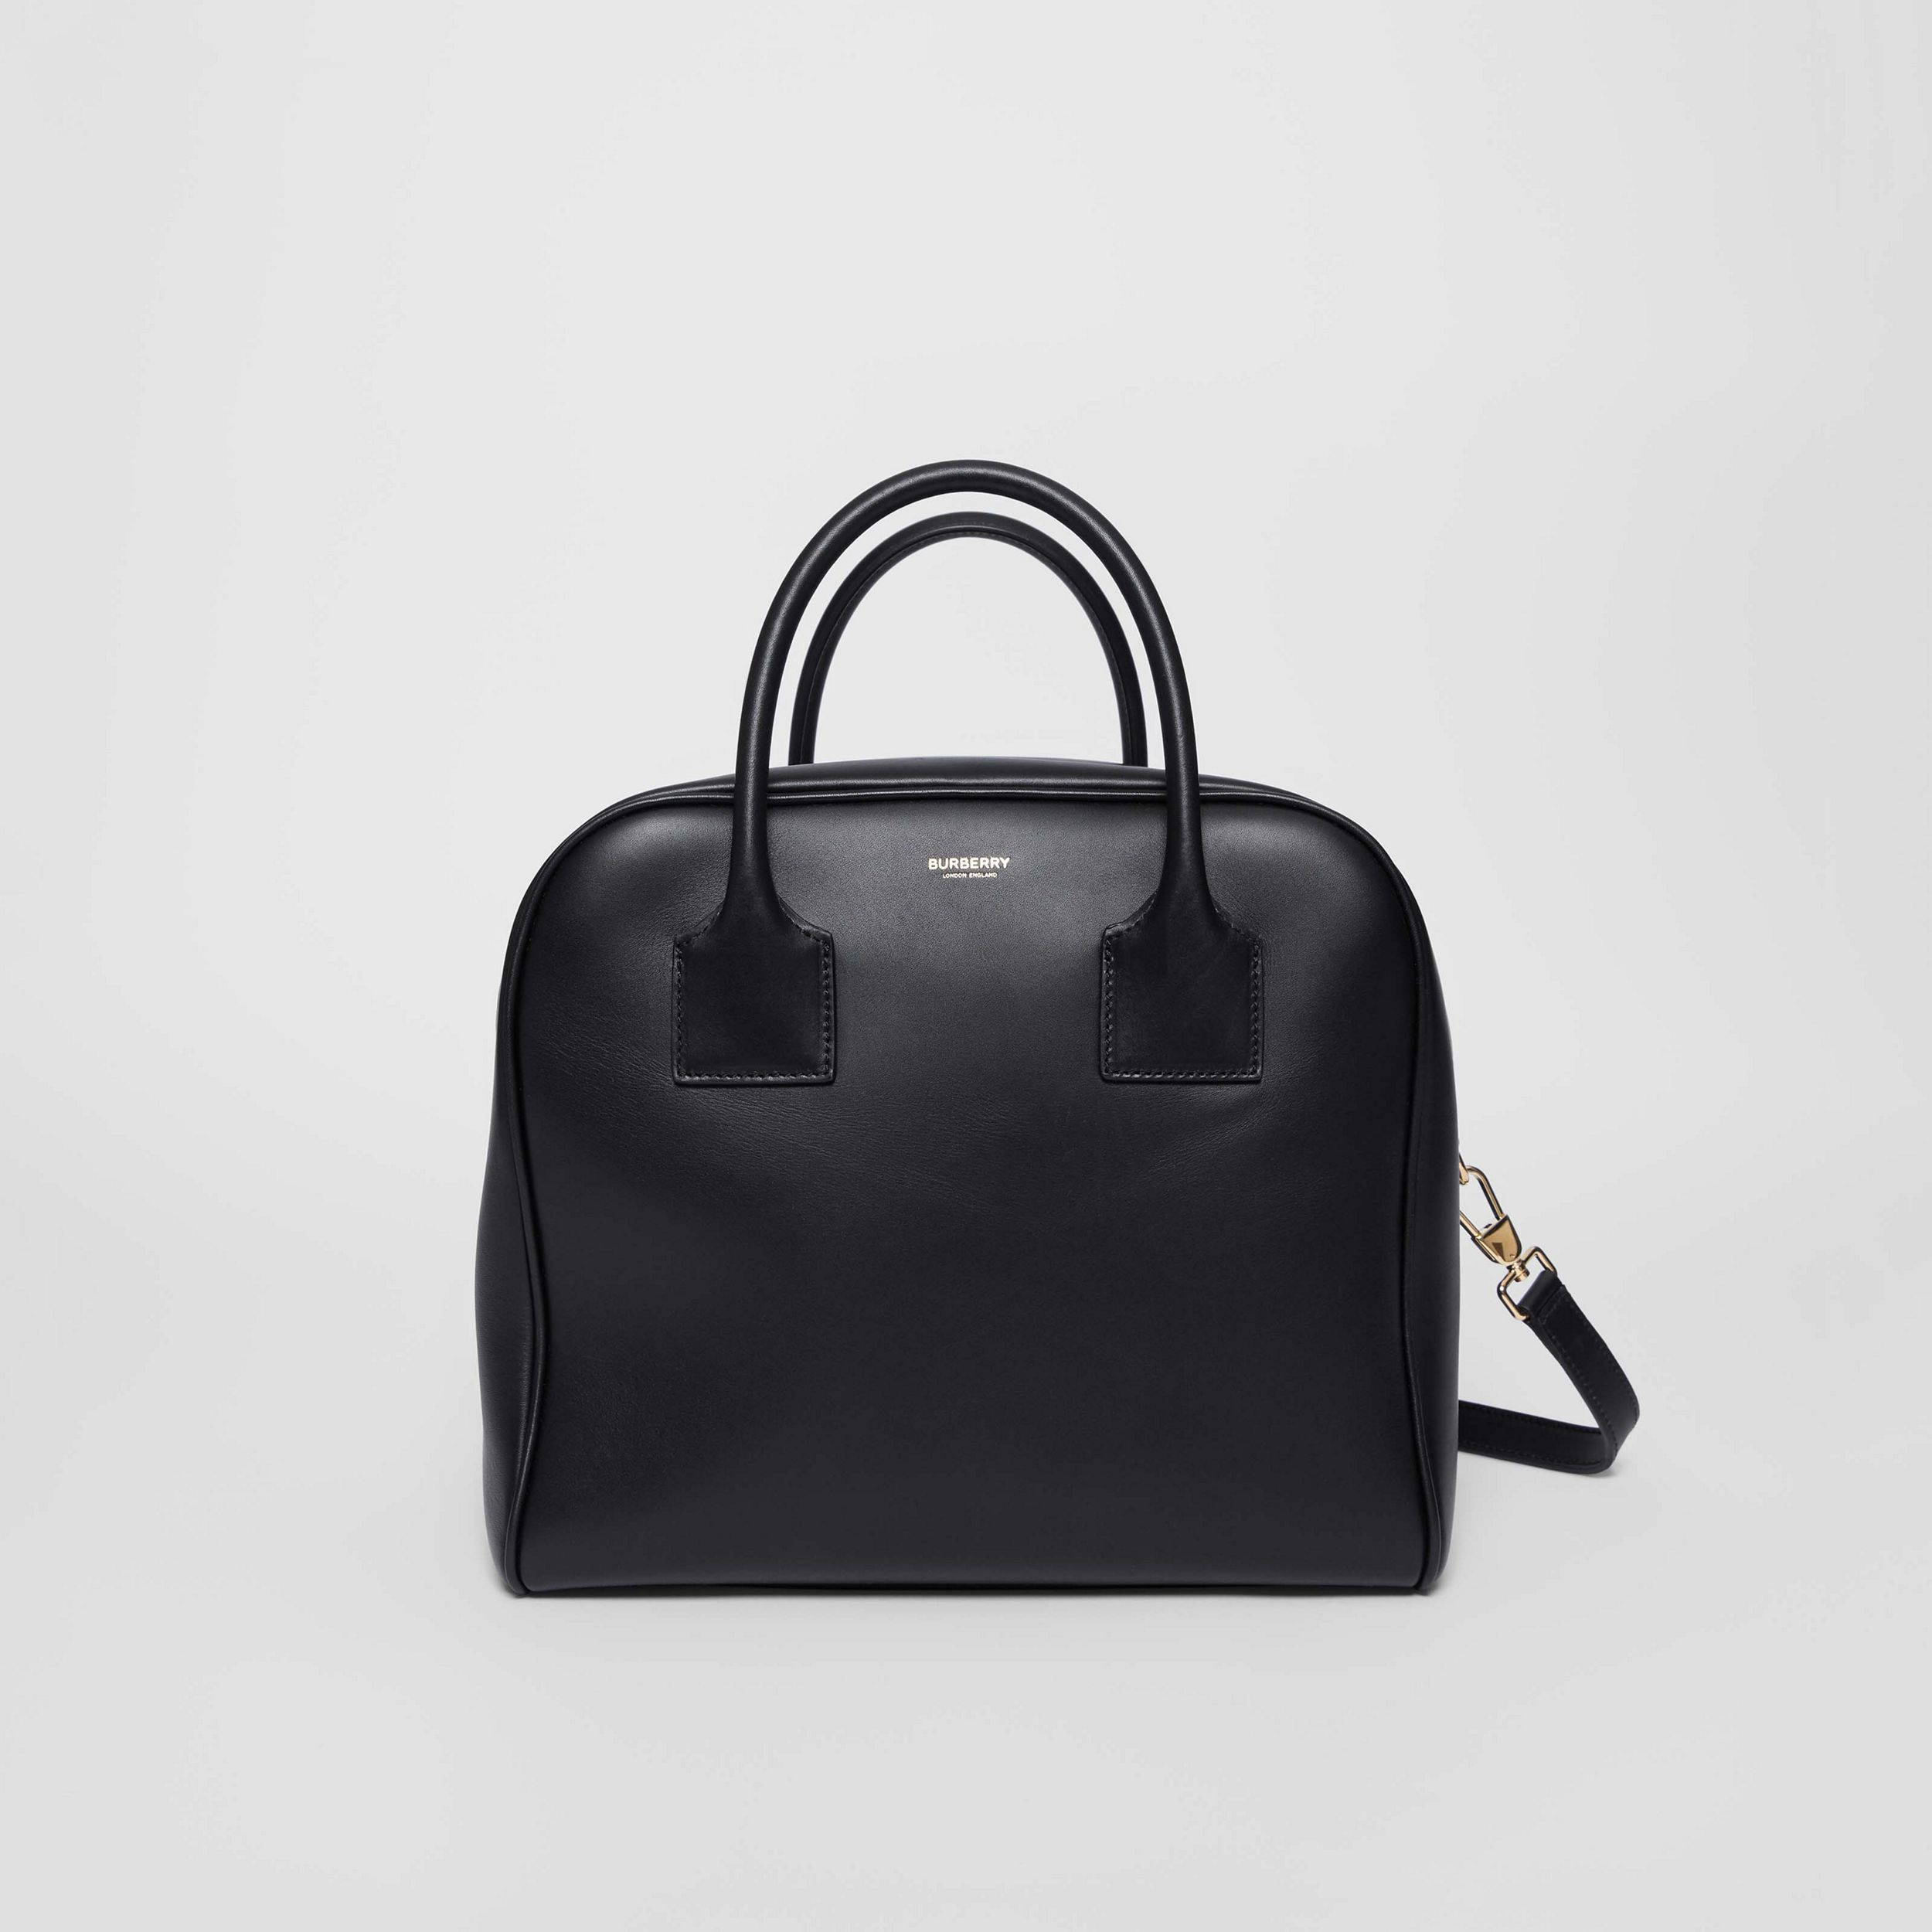 Medium Leather Cube Bag in Black - Women | Burberry - 1